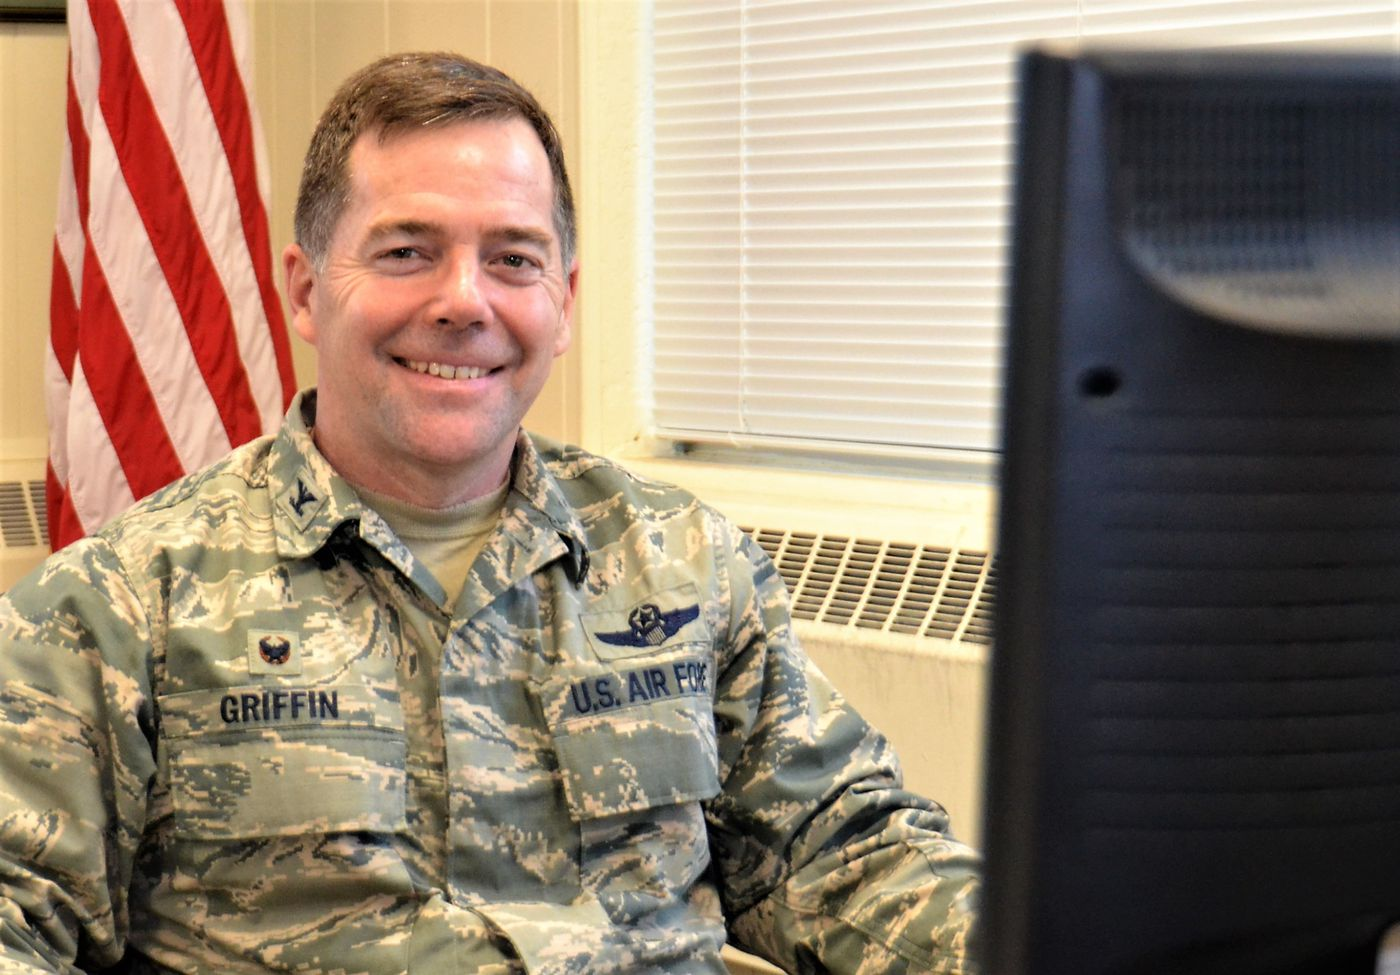 Col. Bill Griffin, 111th Attack Wing commander, has come under fire from a fellow commander and women at the Horsham Air Guard Station.